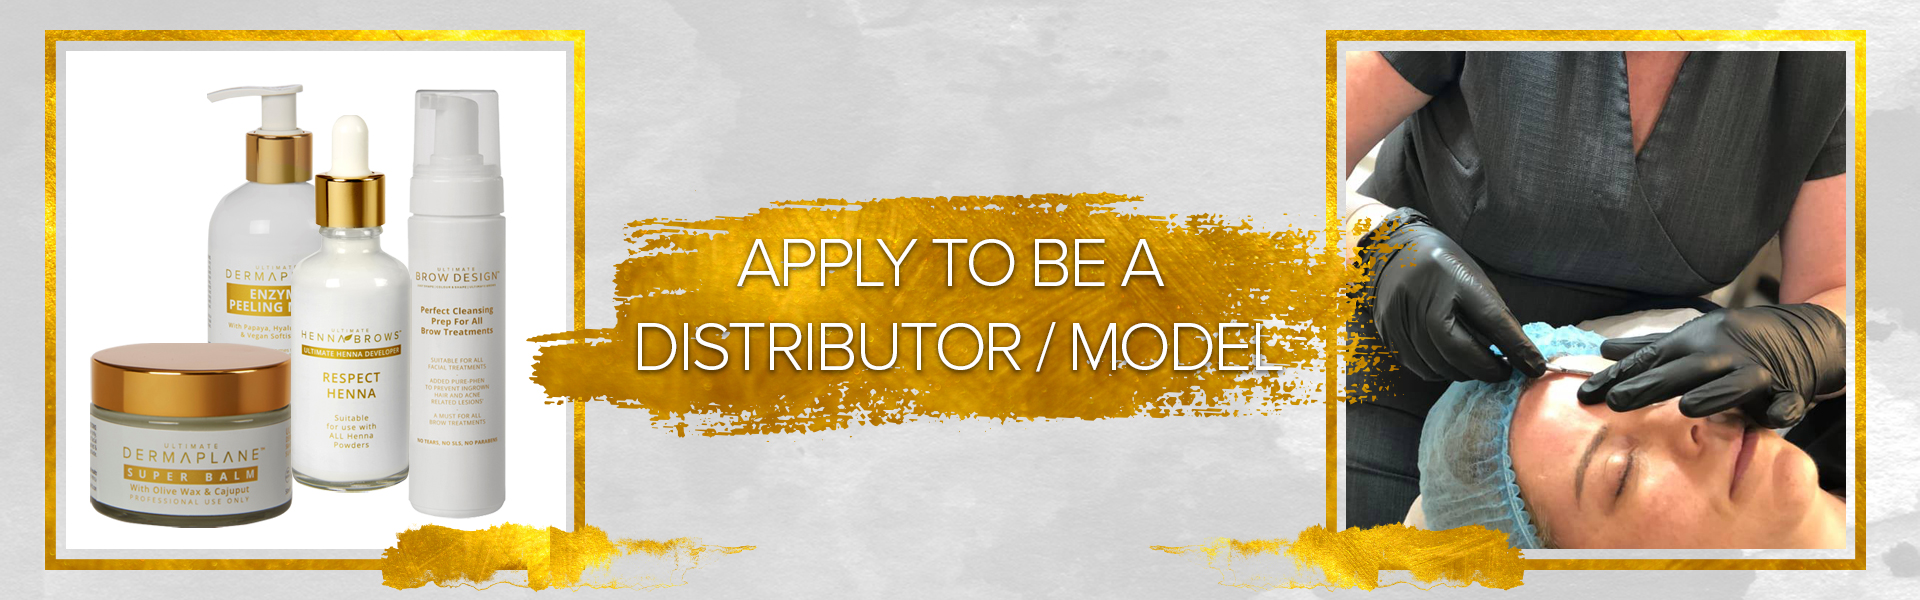 BE A DISTRIBUTOR / MODEL